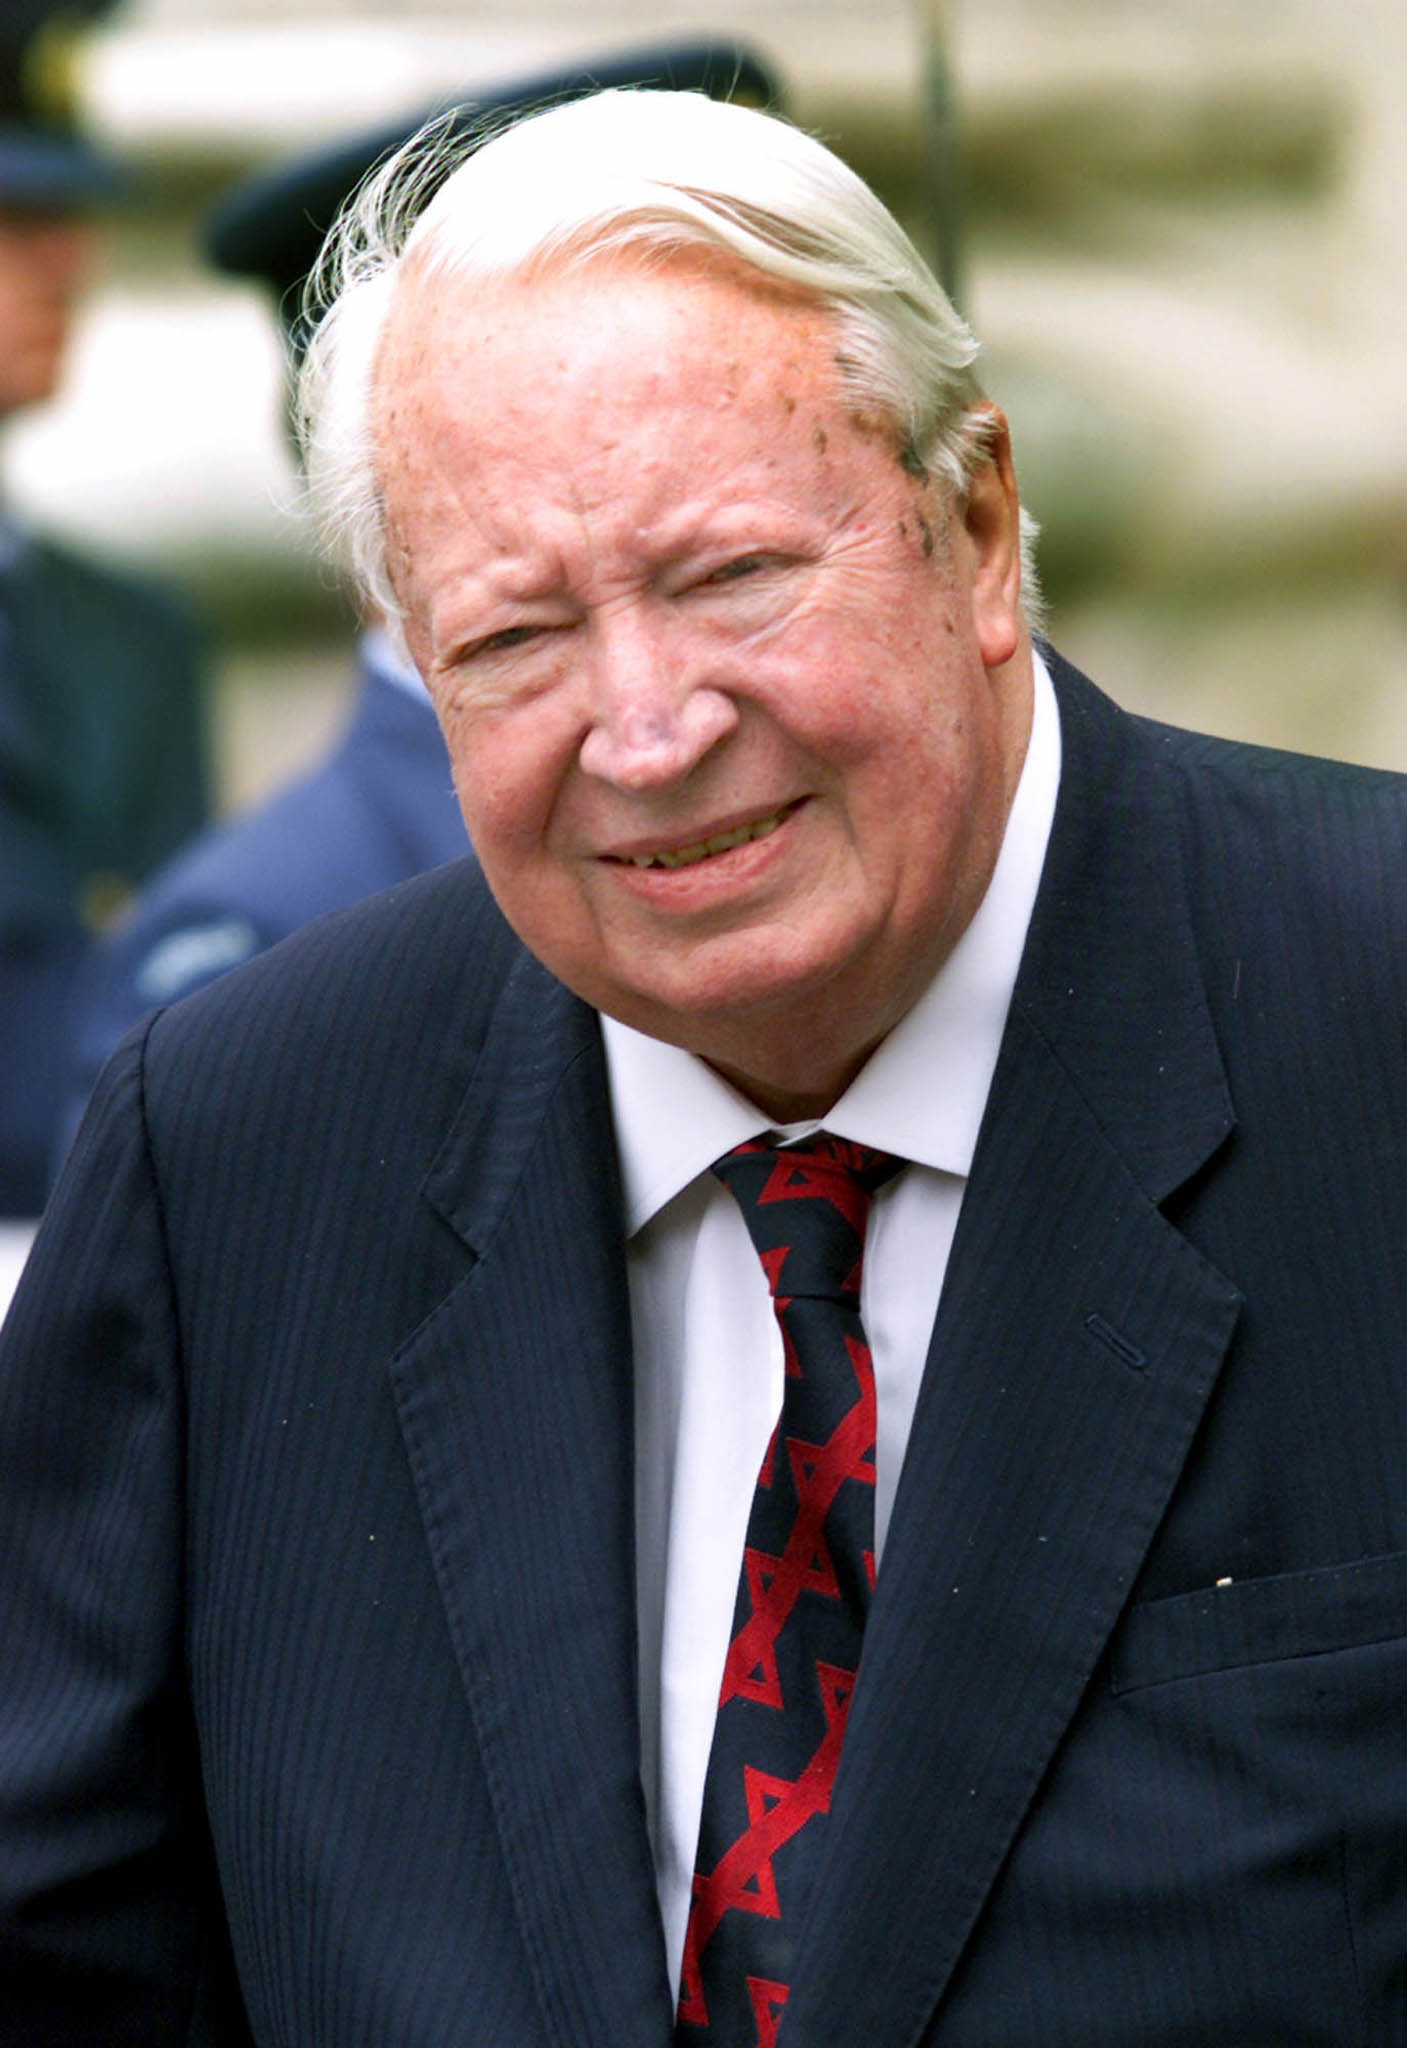 Edward Heath, former British Prime Minister, leaves Westminster Abbey after a service to mark the centenary of modern Australia on July 7, 2000.